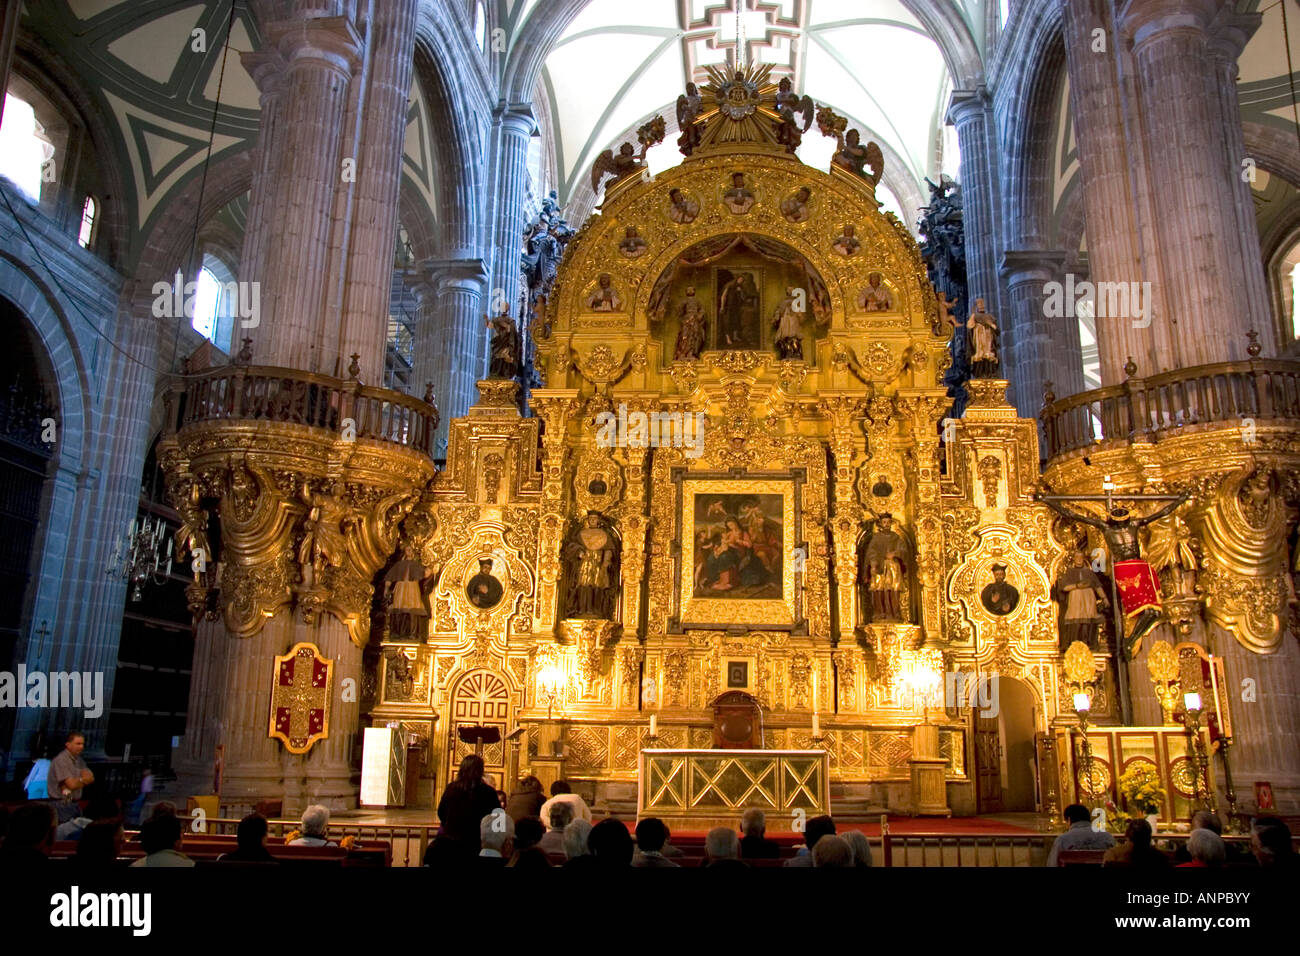 A gold alter in the Catedral Metropolitana located on the zocalo Mexico City Mexico - Stock Image